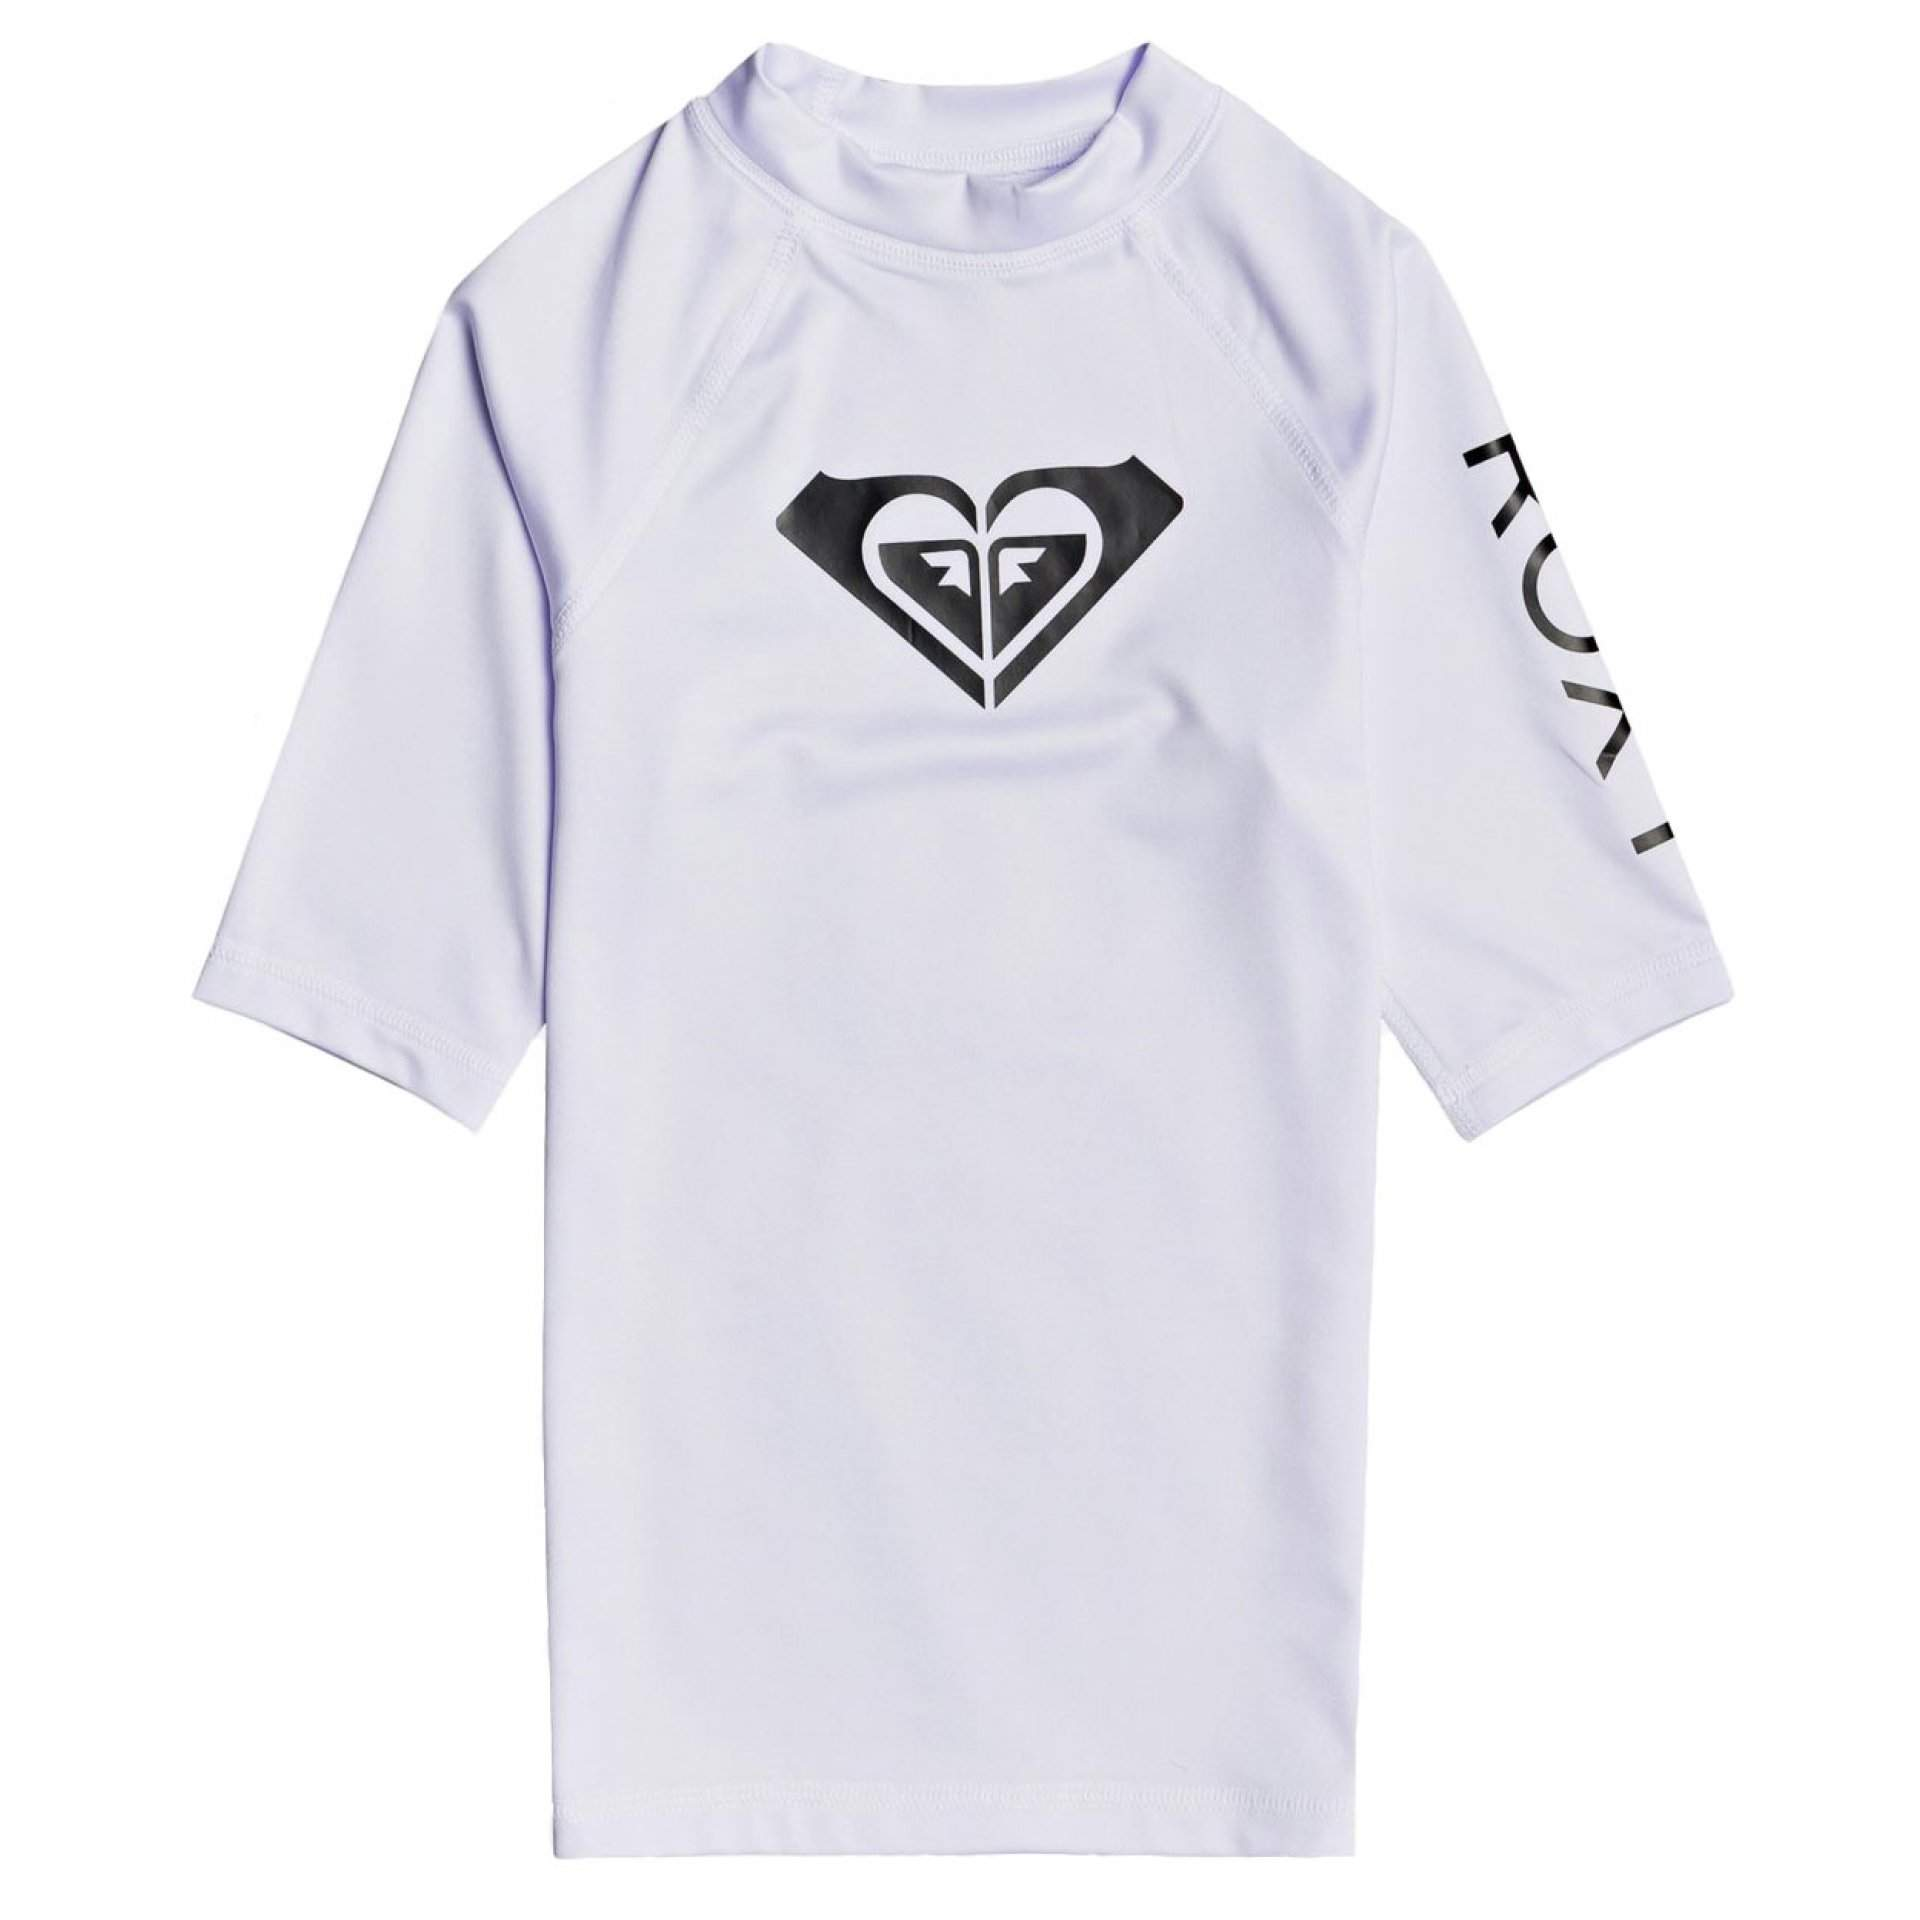 LYCRA ROXY GIRLS 8-16 WHOLE HEARTED SS ERGWR03206 WBB1